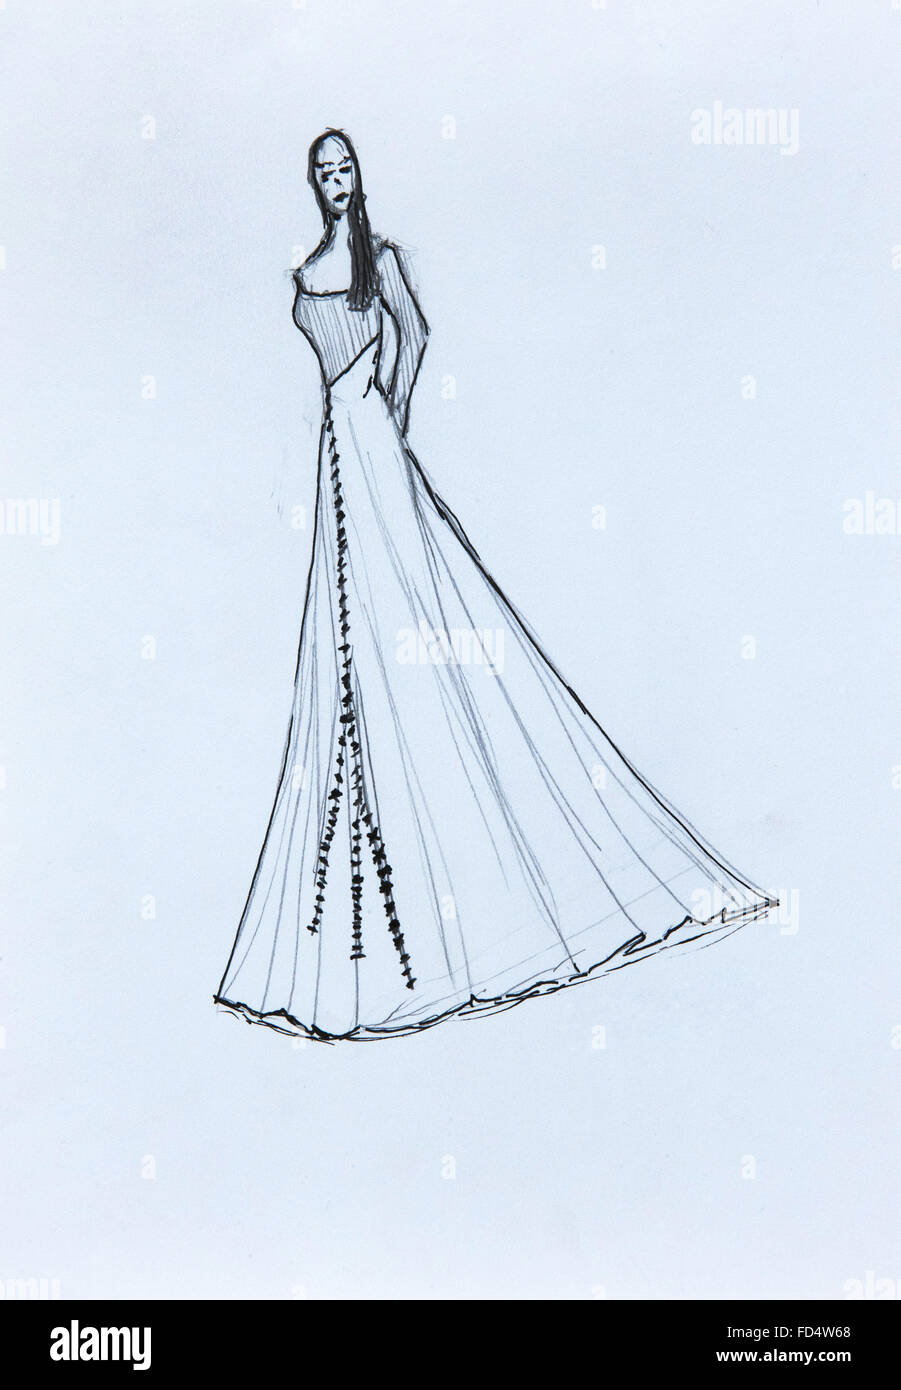 Fashion Designer Drawing Coat High Resolution Stock Photography And Images Alamy